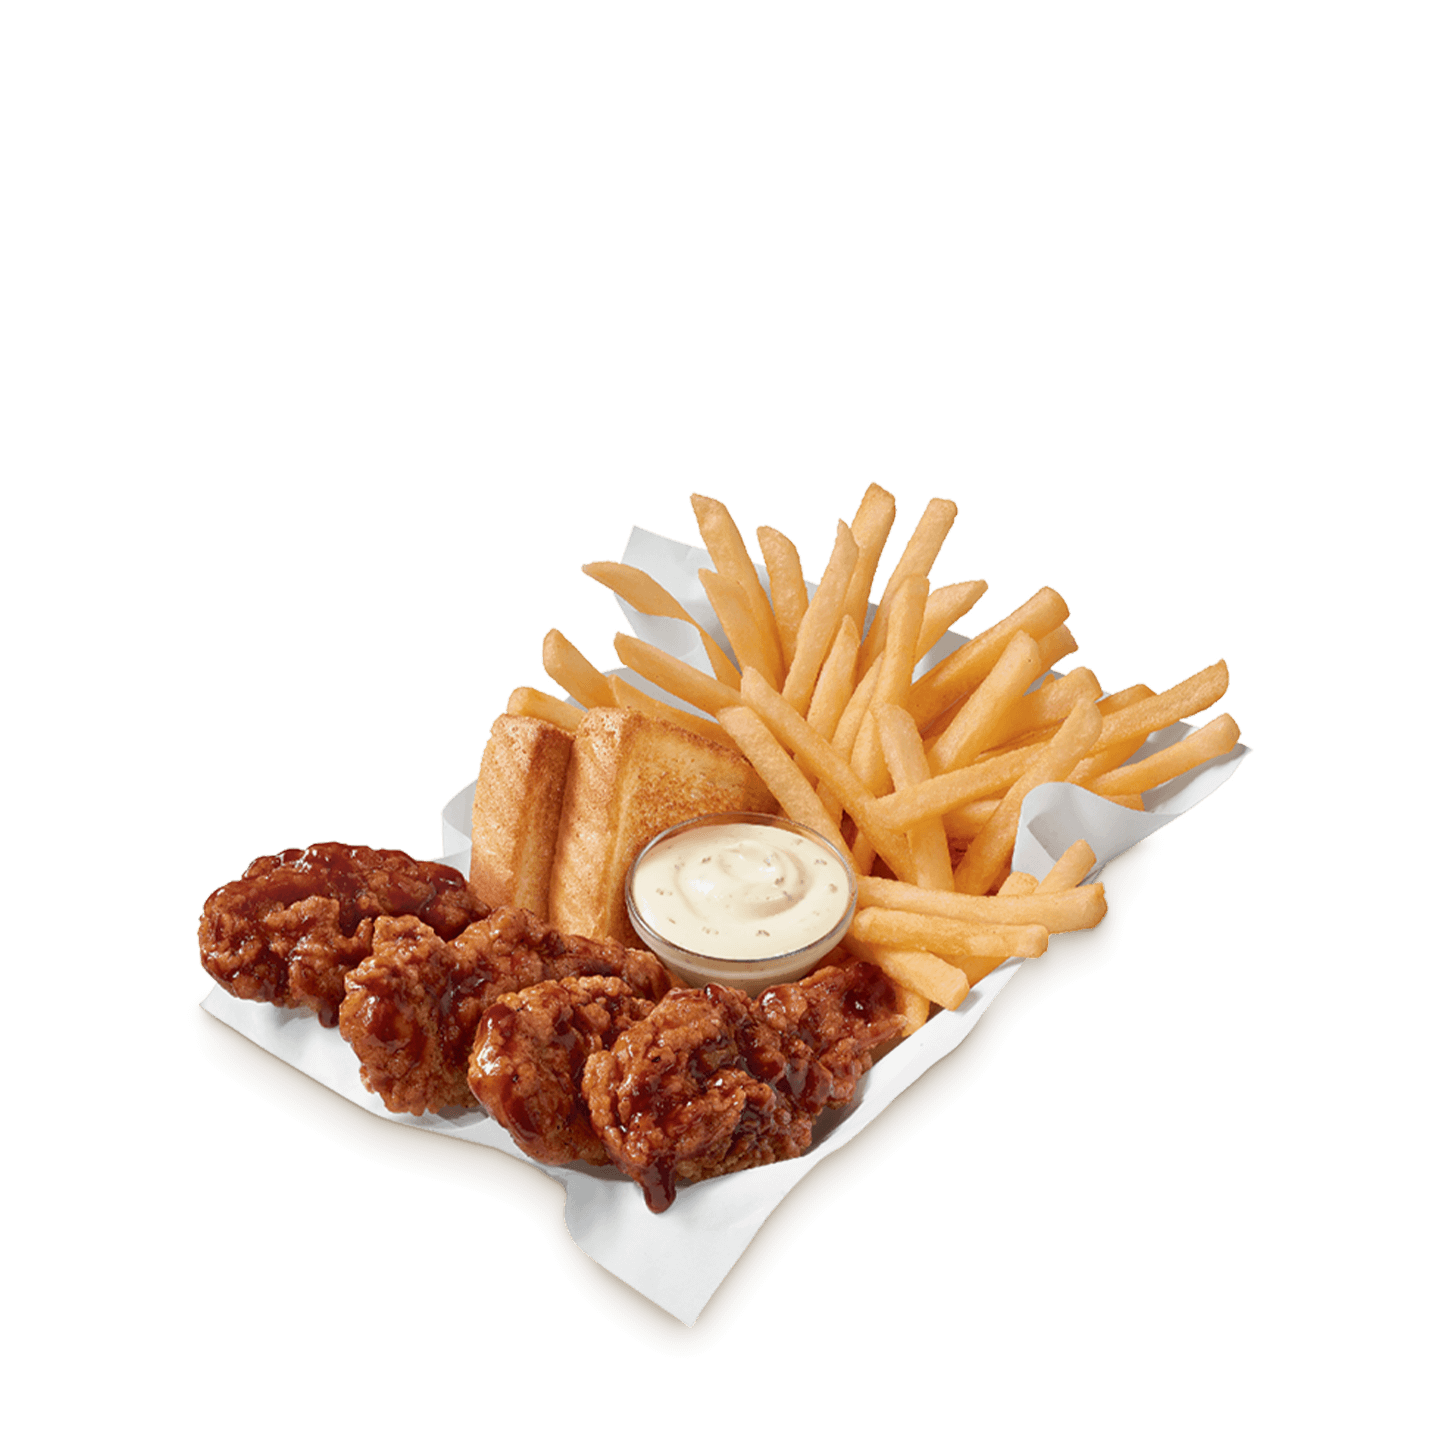 Honey BBQ chicken strips with fries, toast and dipping sauce